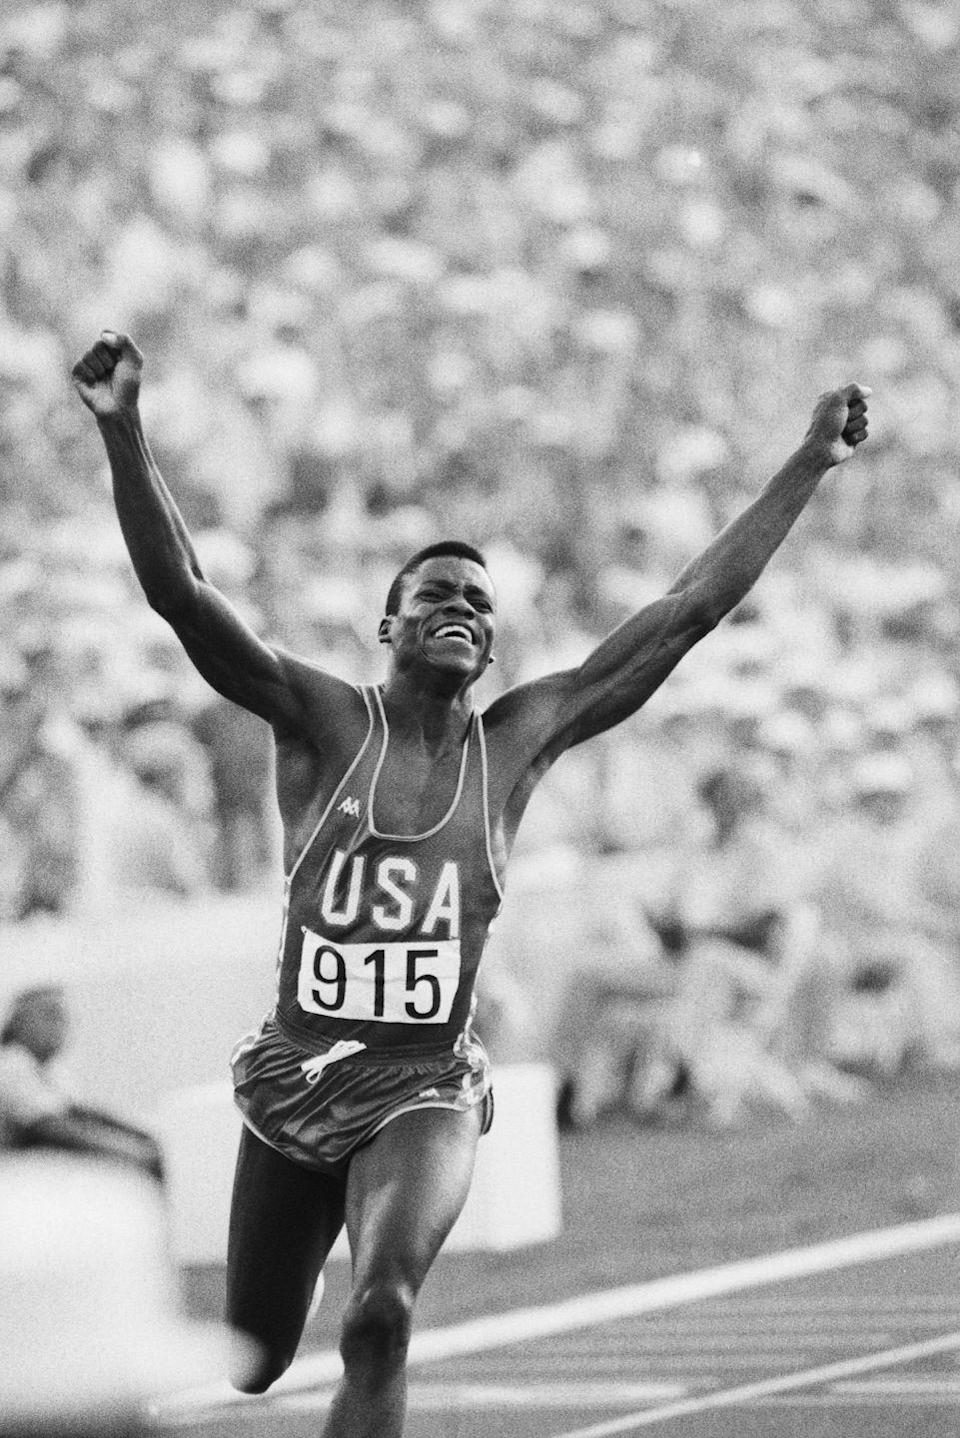 <p>Carl Lewis throws his hands up in victory as he crosses the finish line and wins a gold medal in the men's 100m sprint. The athlete wore a tank top and thigh-grazing athletic shorts for his big win. </p>